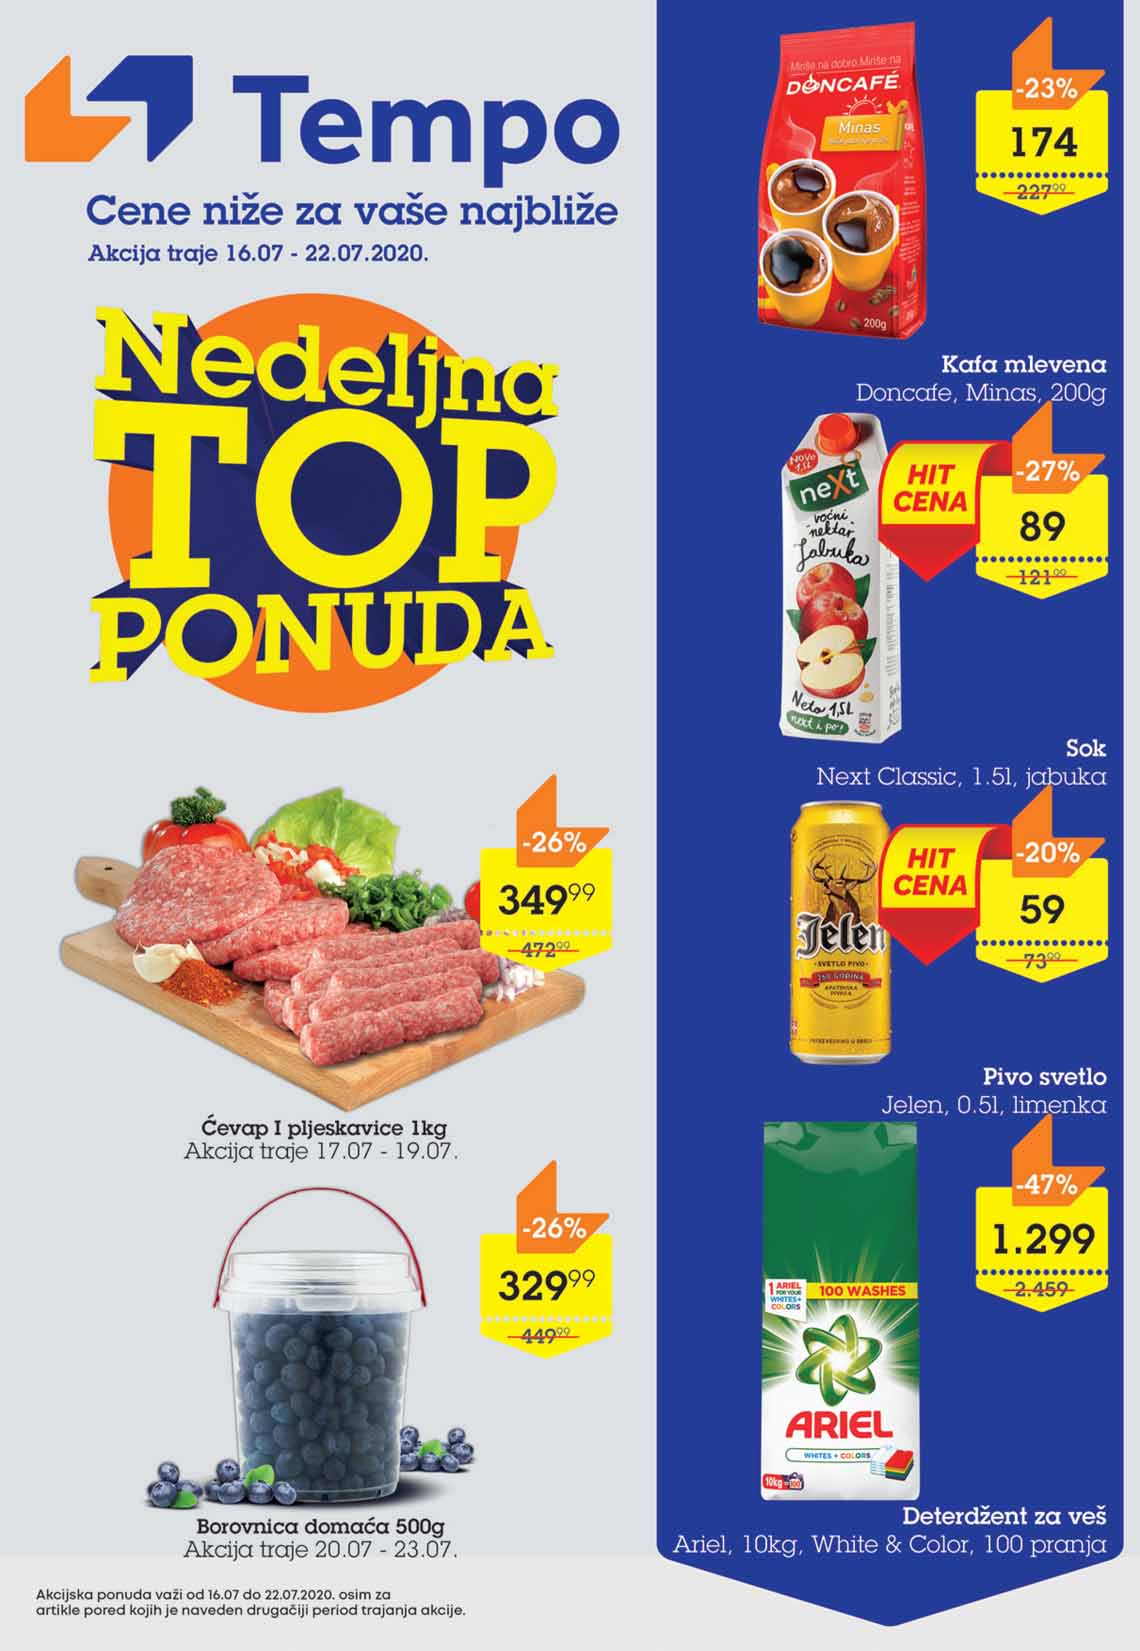 TEMPO Akcija - NEDELJNA TOP PONUDA  - Super sniženja do 22.07.2020.